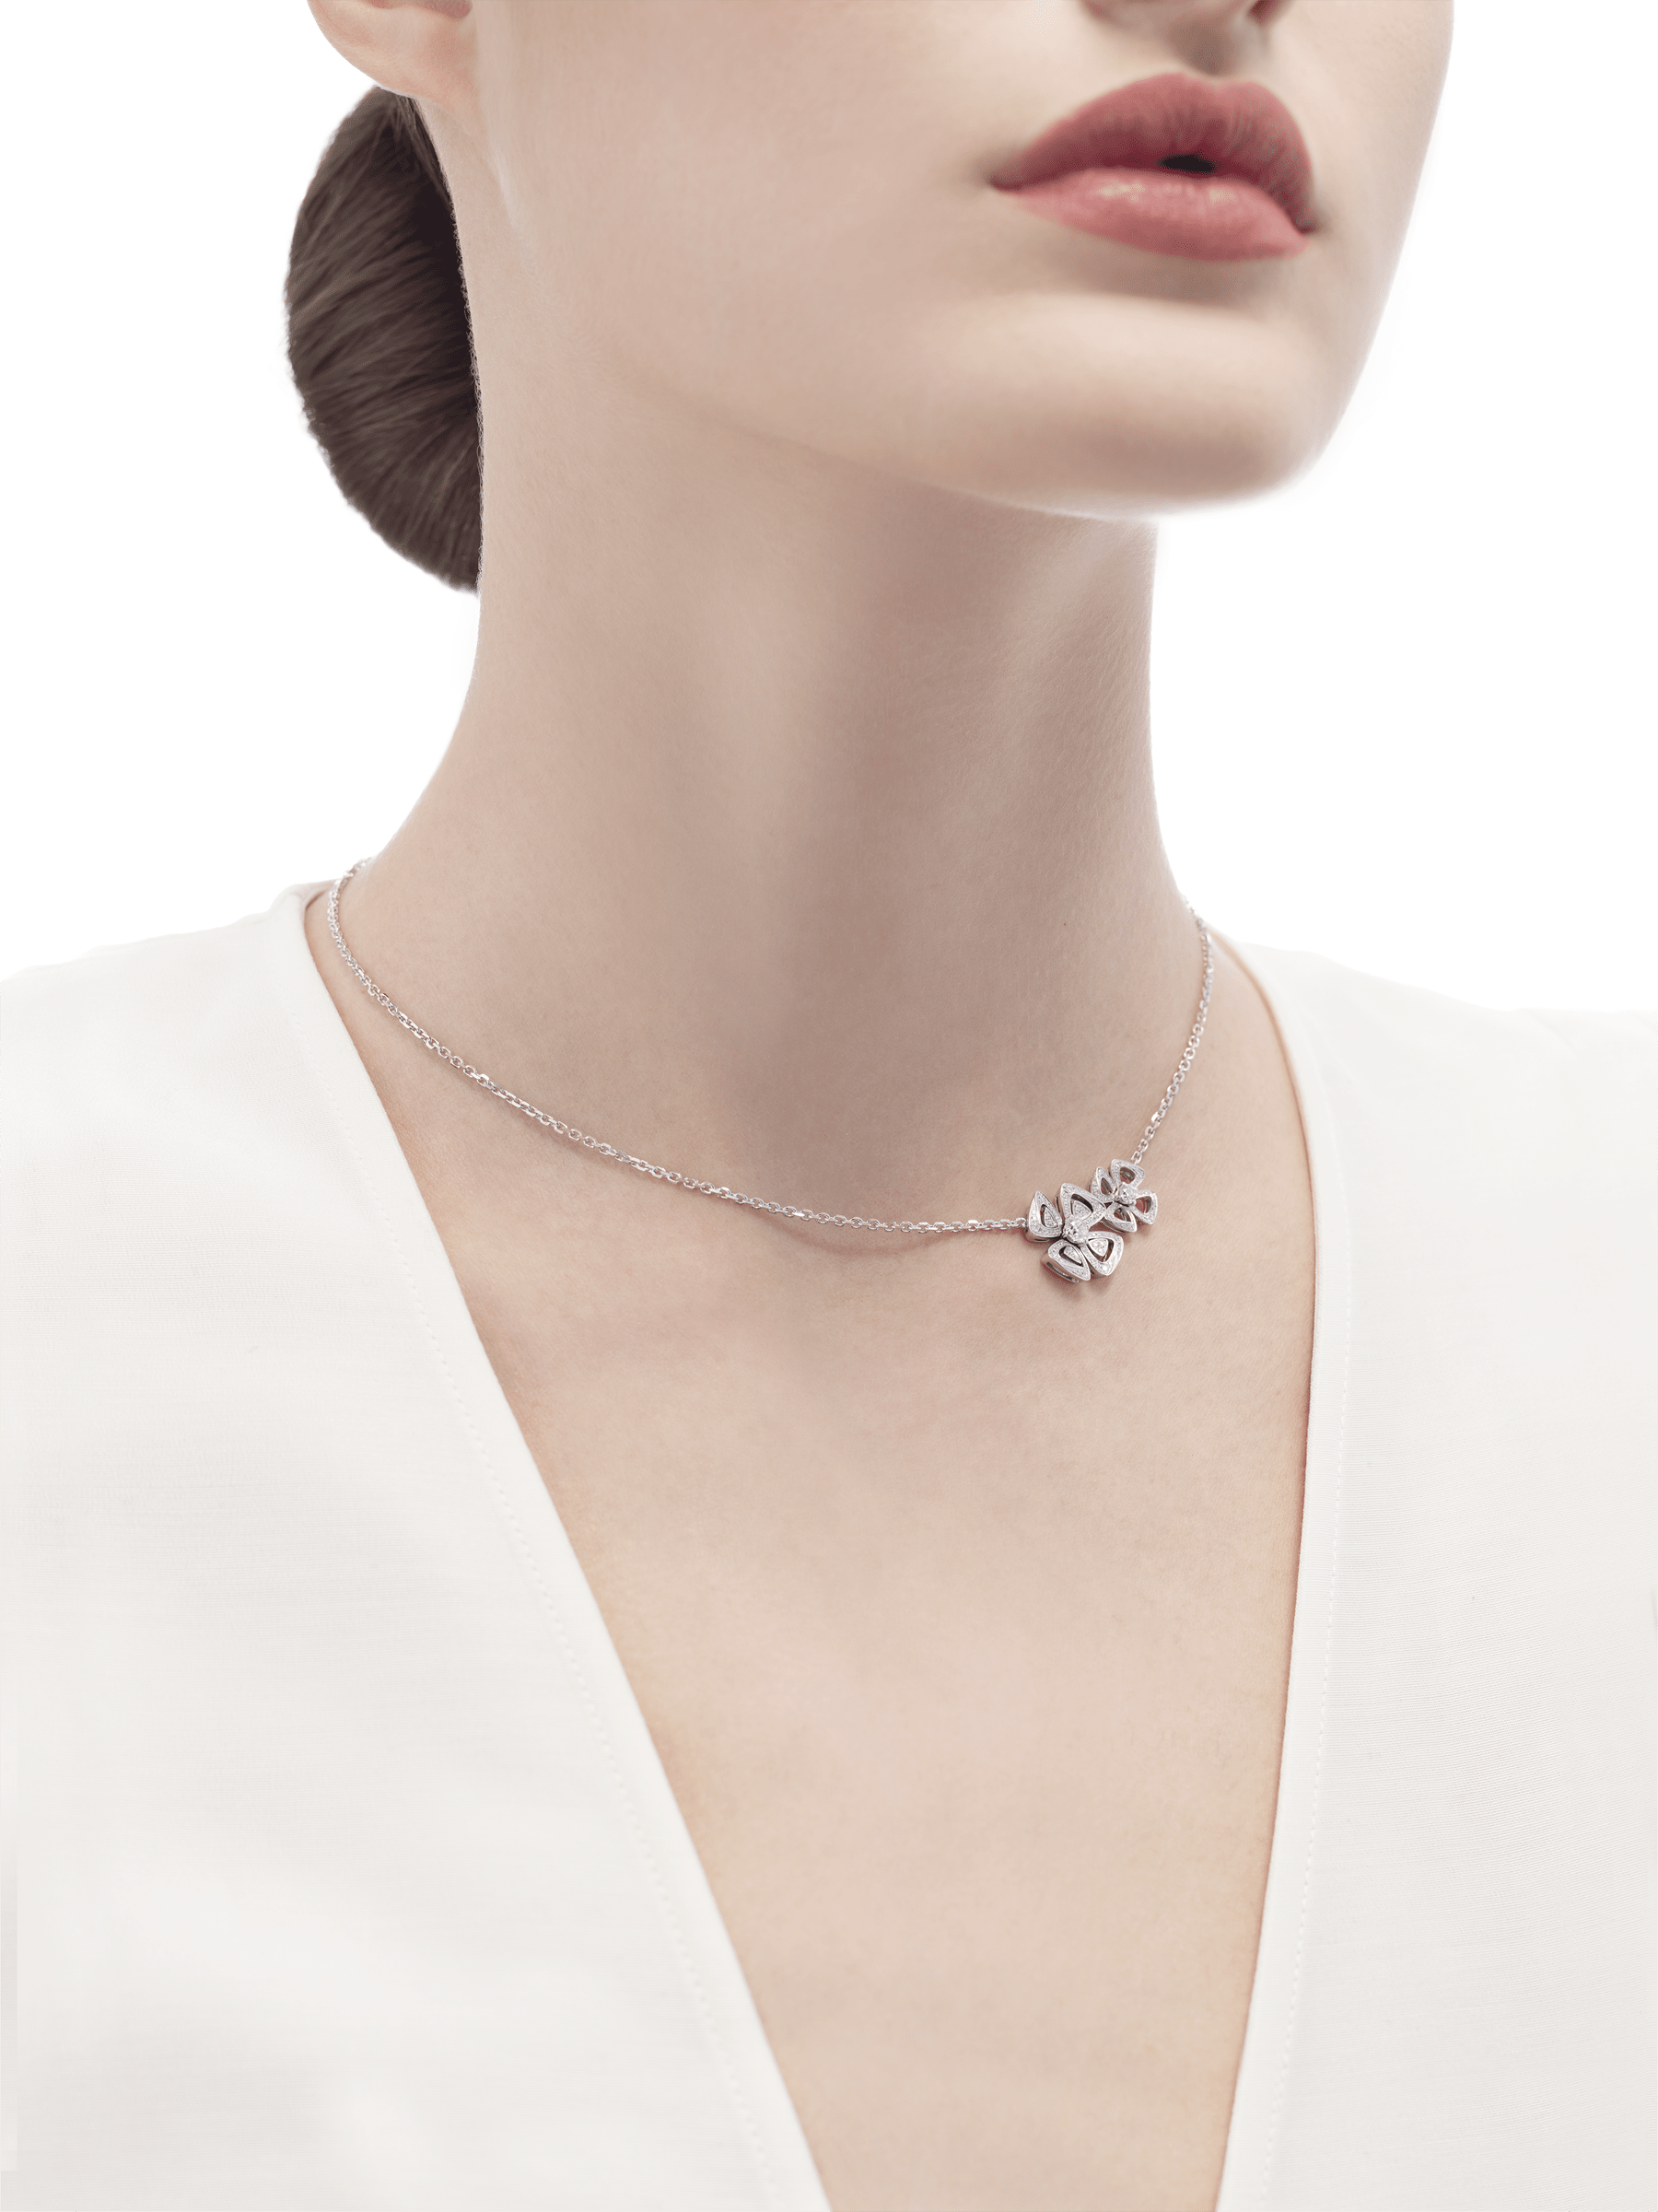 Fiorever two-flower 18 kt white gold necklace set with two central diamonds and pavé diamonds. 354498 image 4